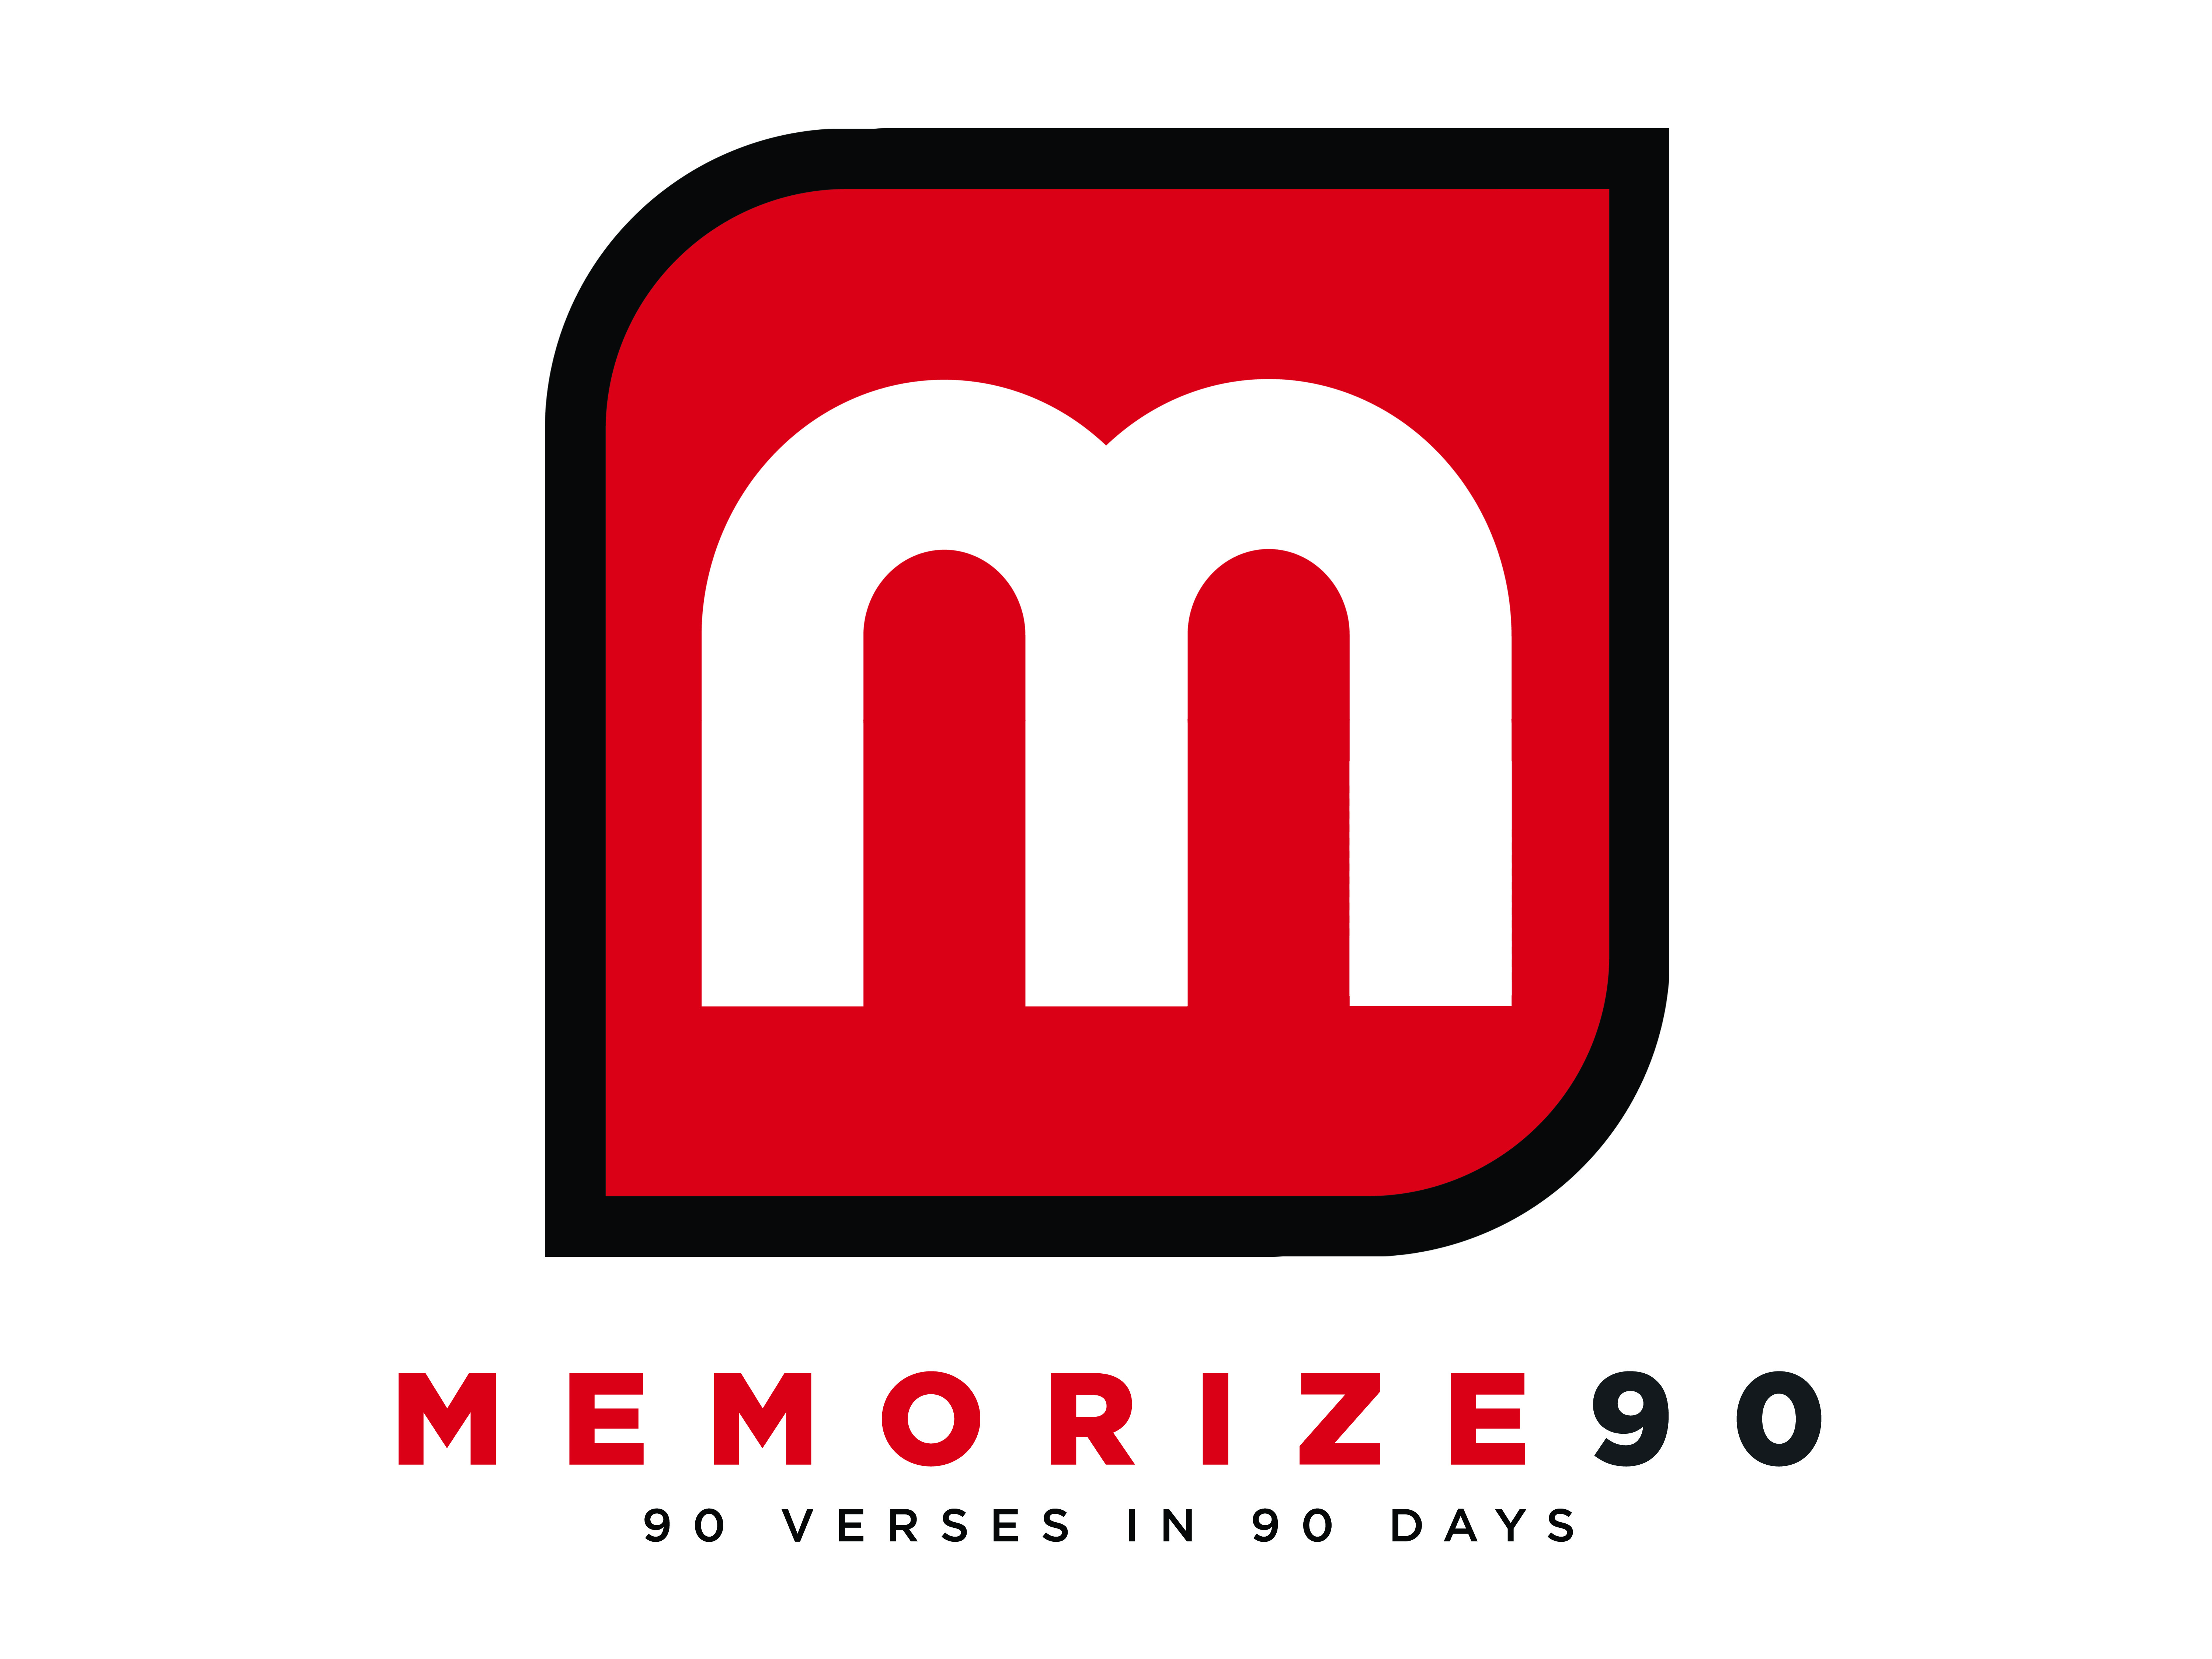 Category: Memorize 90 | UPCI Youth Ministries